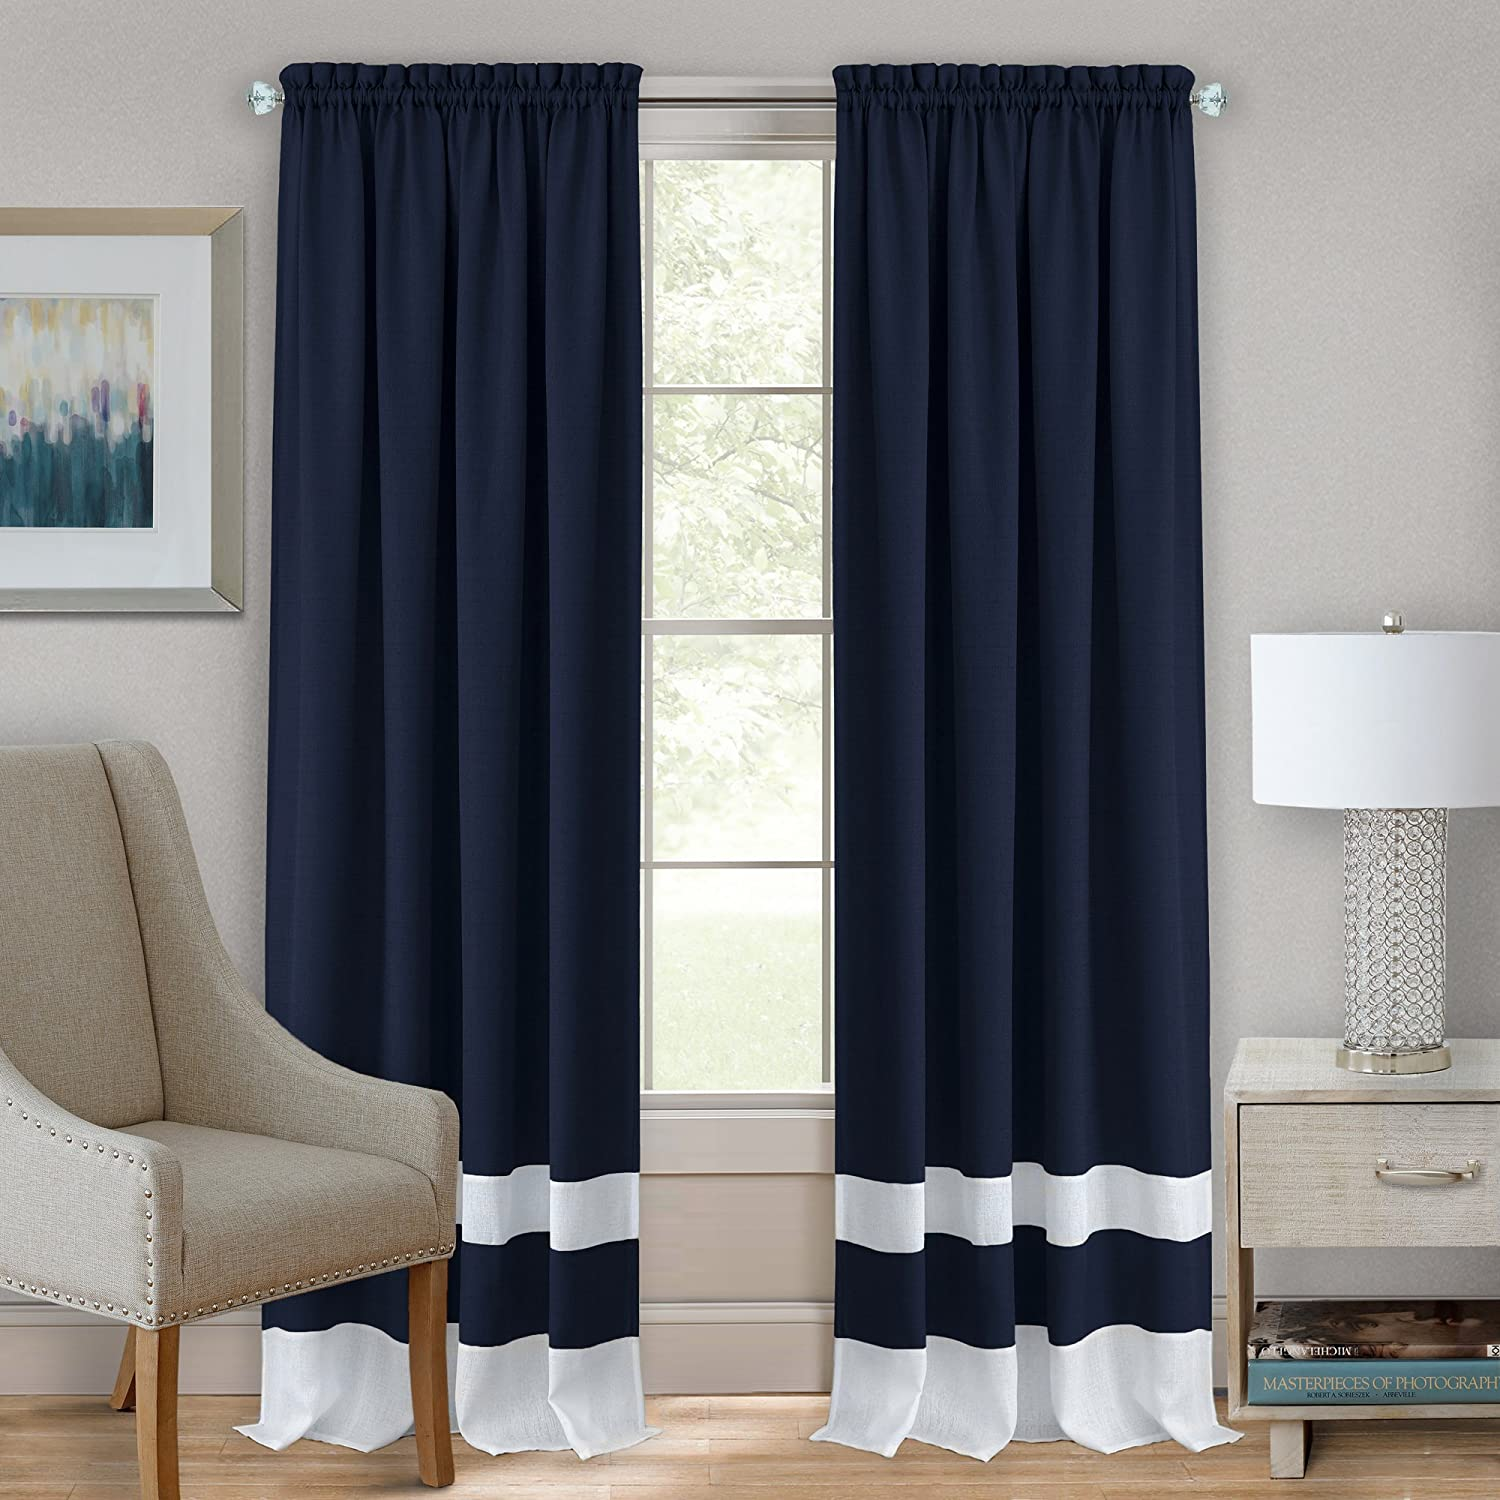 """Achim Home Furnishings Halley Window in a Bag, 56 63-Inch, Taupe,-Rod Pocket Panel 52"""" x 63"""", Navy & White"""